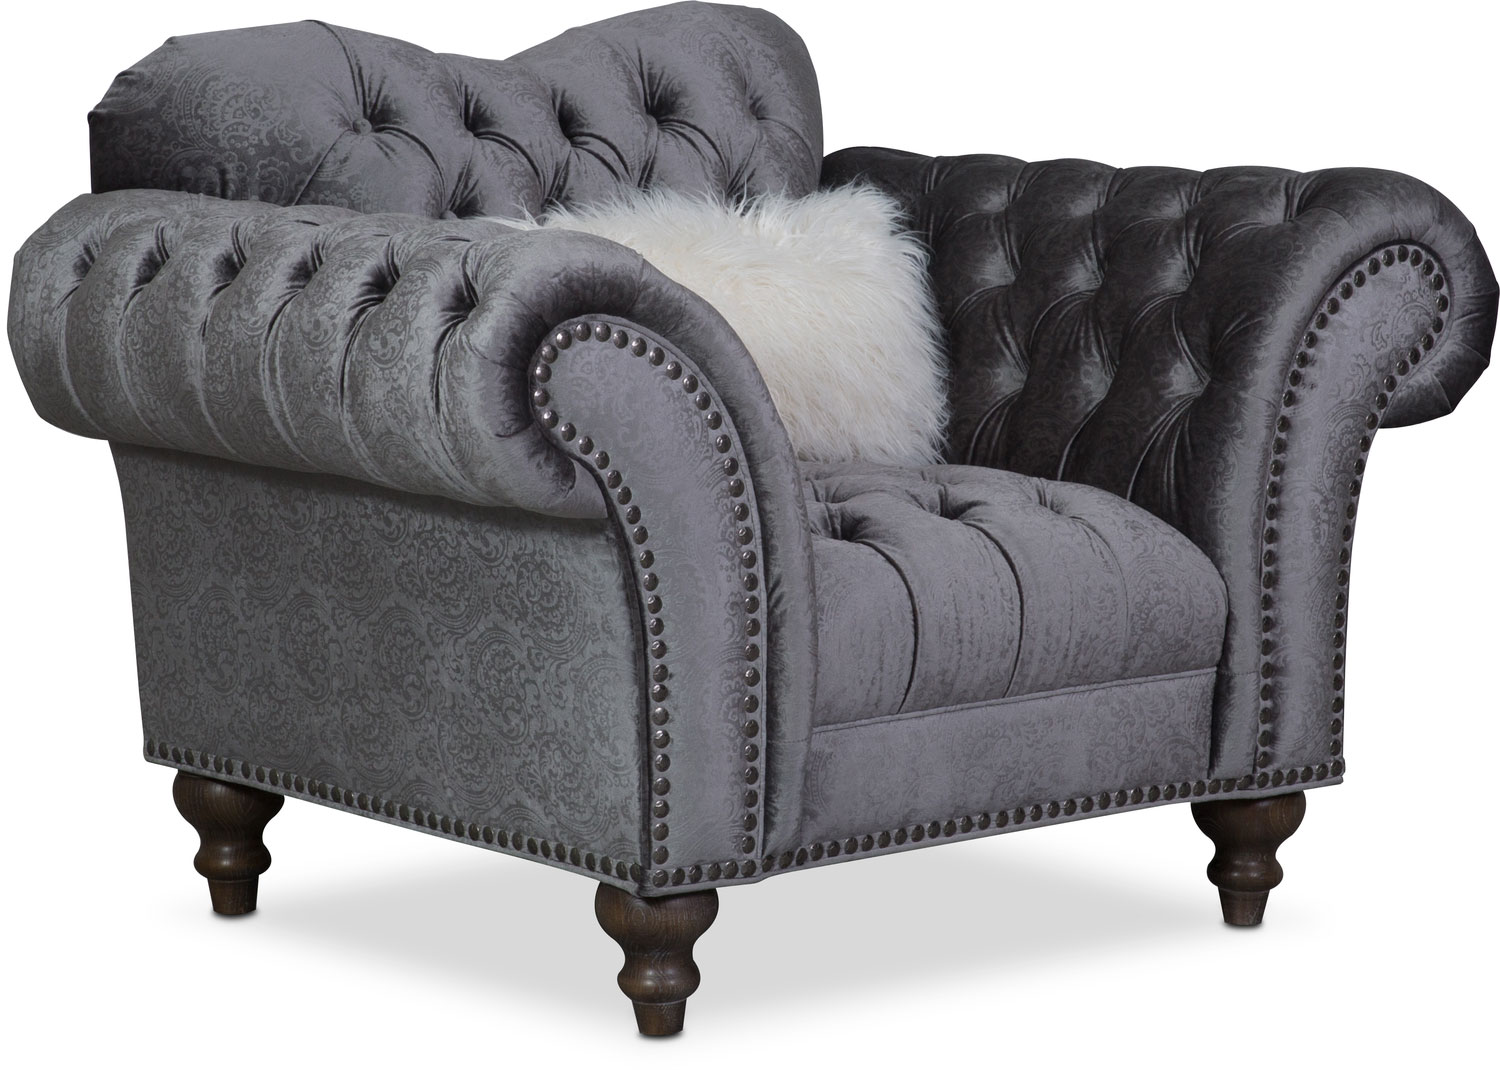 Living Room Furniture - Brittney Chair - Charcoal